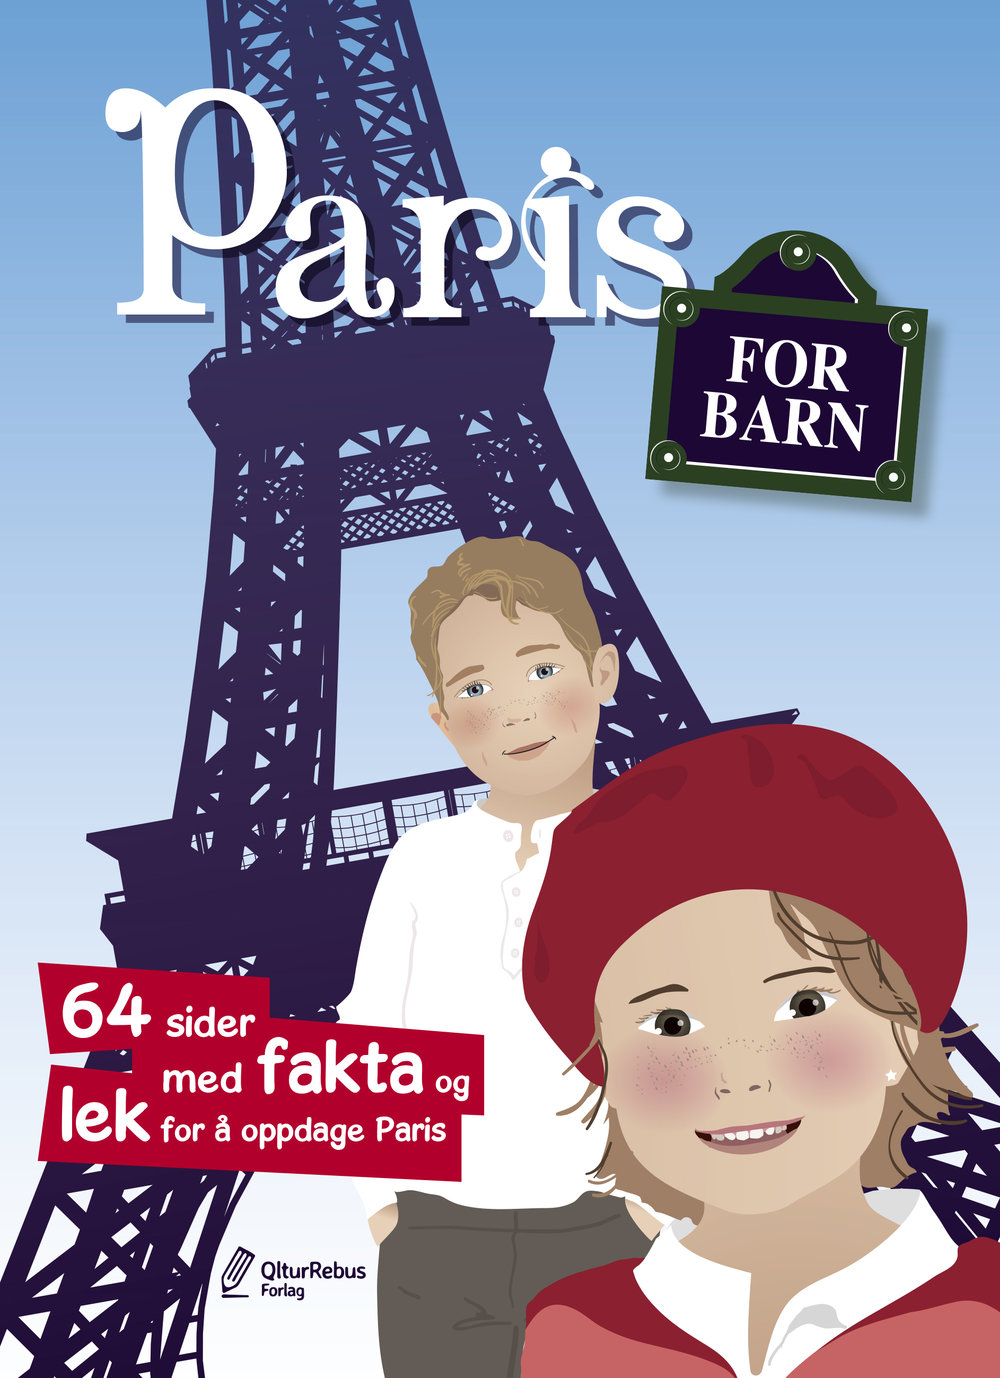 Paris for barn blåjpg1.jpg